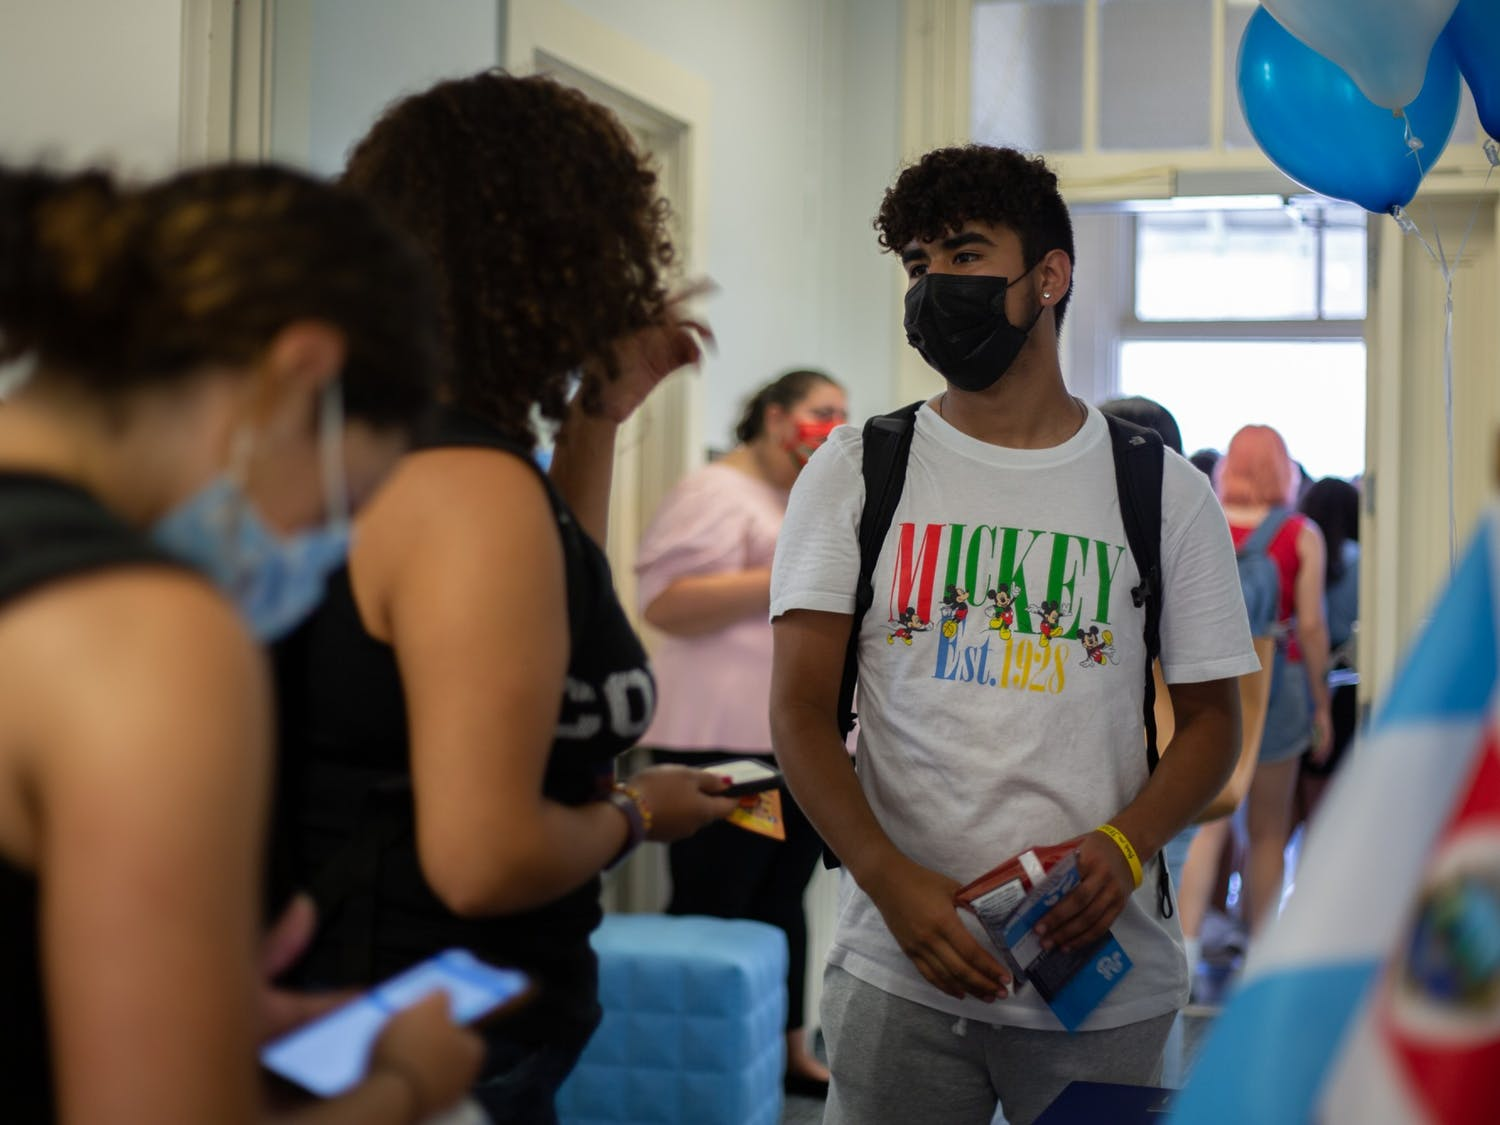 Eddy Velazquez, a sophomore pre-business major, talks to another student at the Carolina Latinx Center's open house event on Aug. 25.